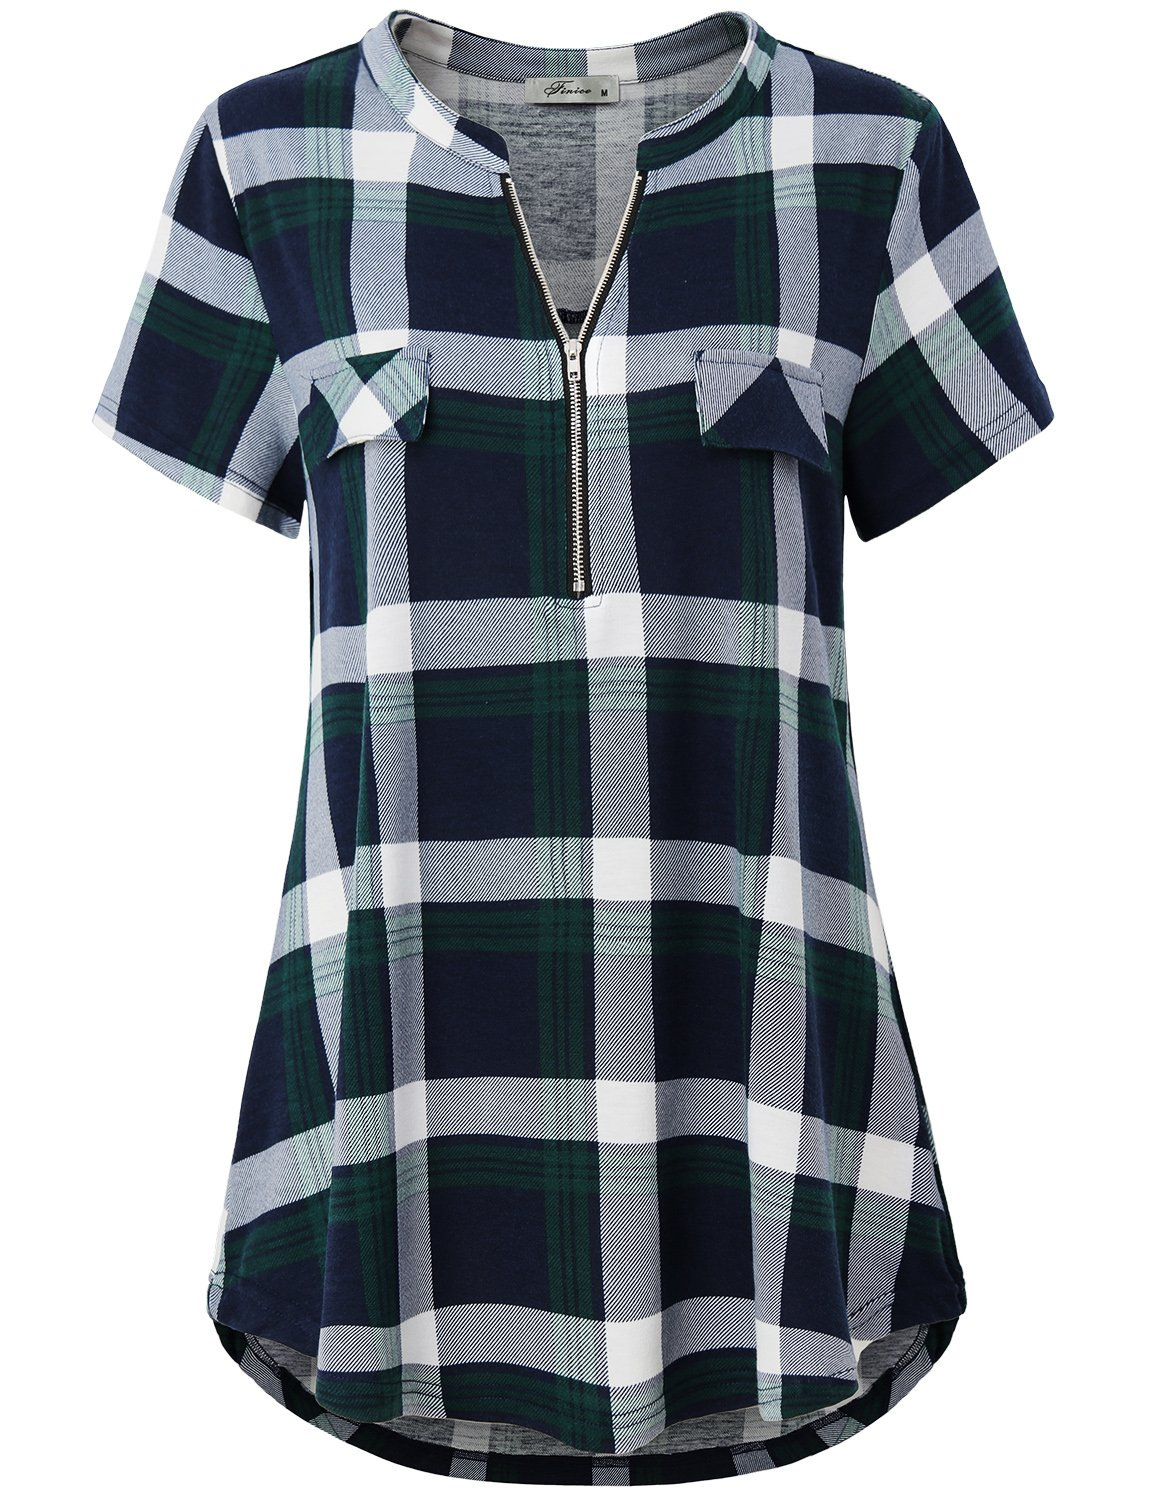 Finice V Neck Blouse, Women's Plus Size Clothing Zipper up Polo Collar Short Sleeve Tunic Tops Stylish Casual Wear Prime Utility Color Block Shirttail Plaid Knit Henley Shirt Green XL